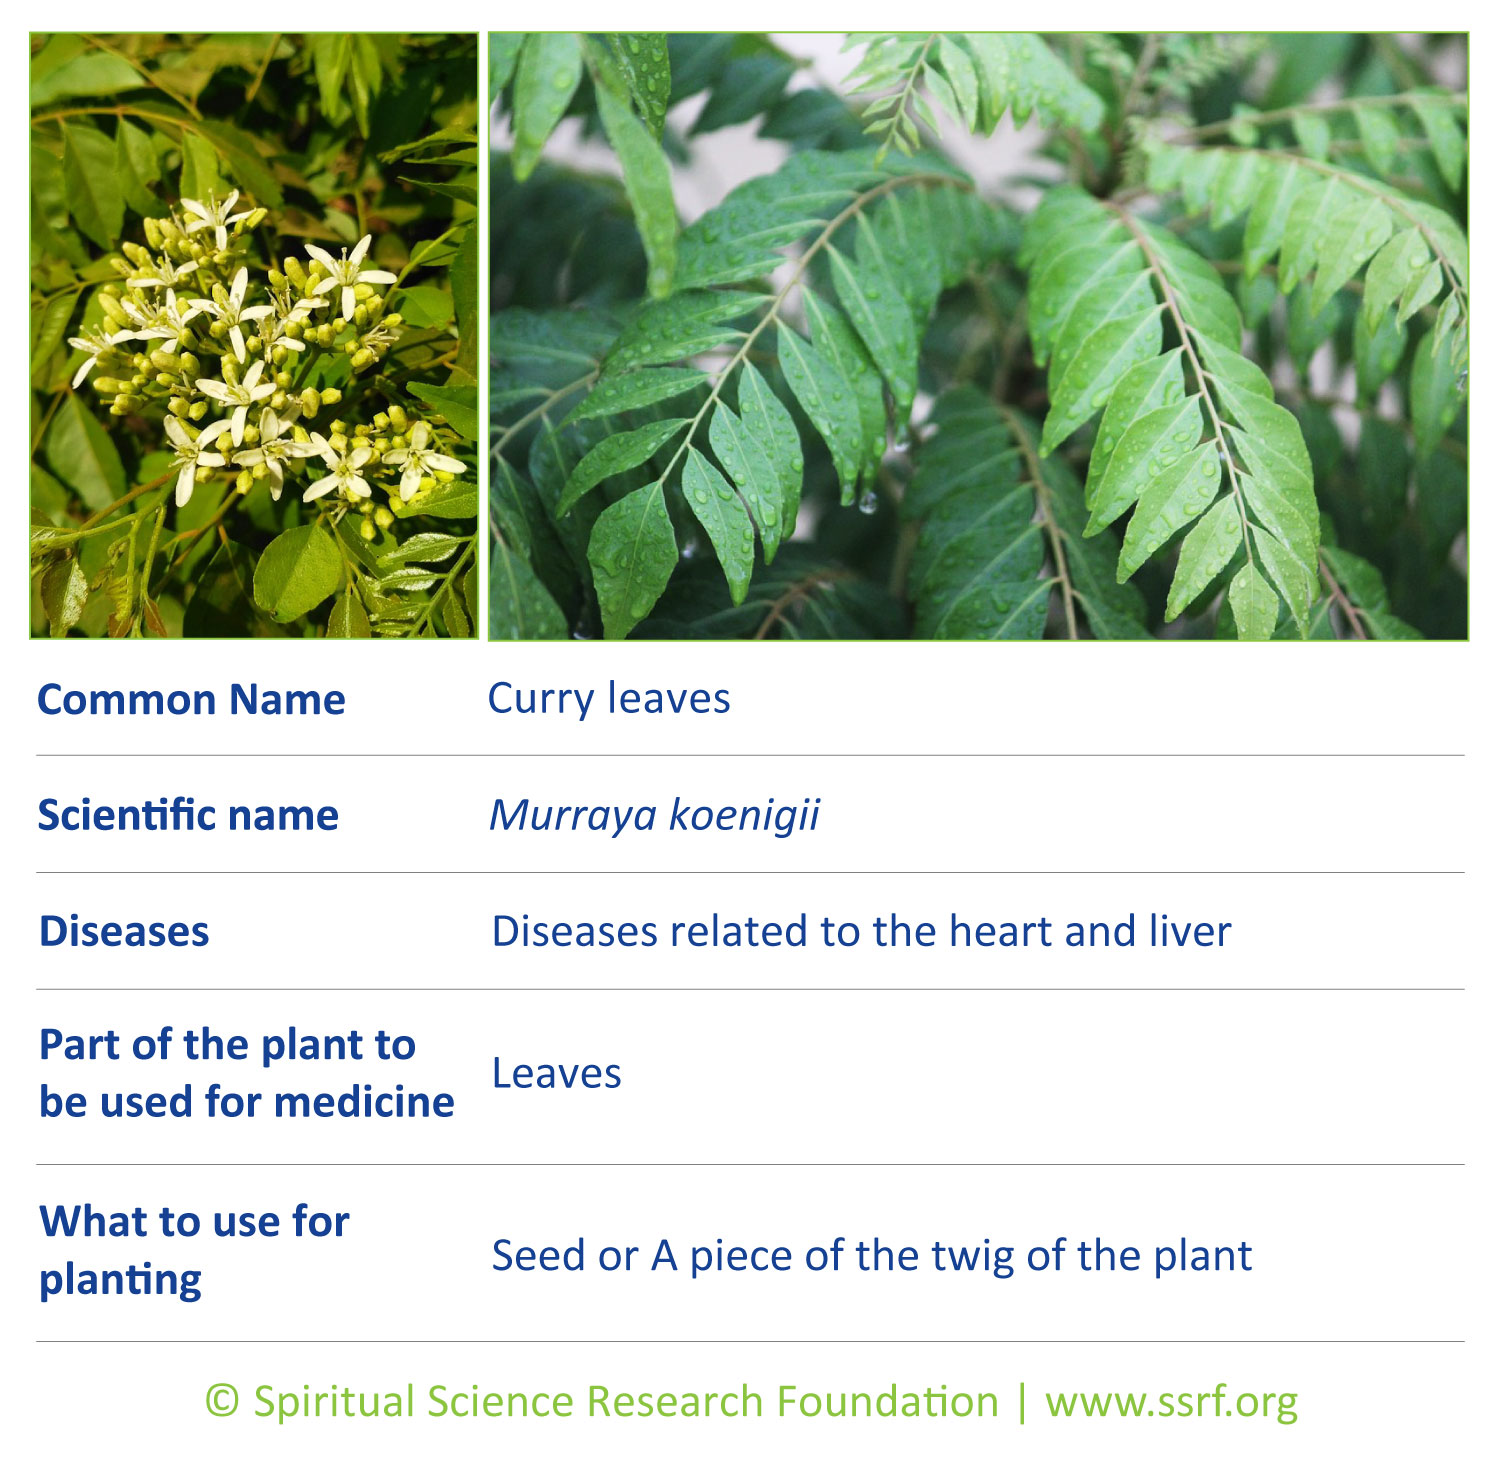 shrubs-2-Curry-leaves